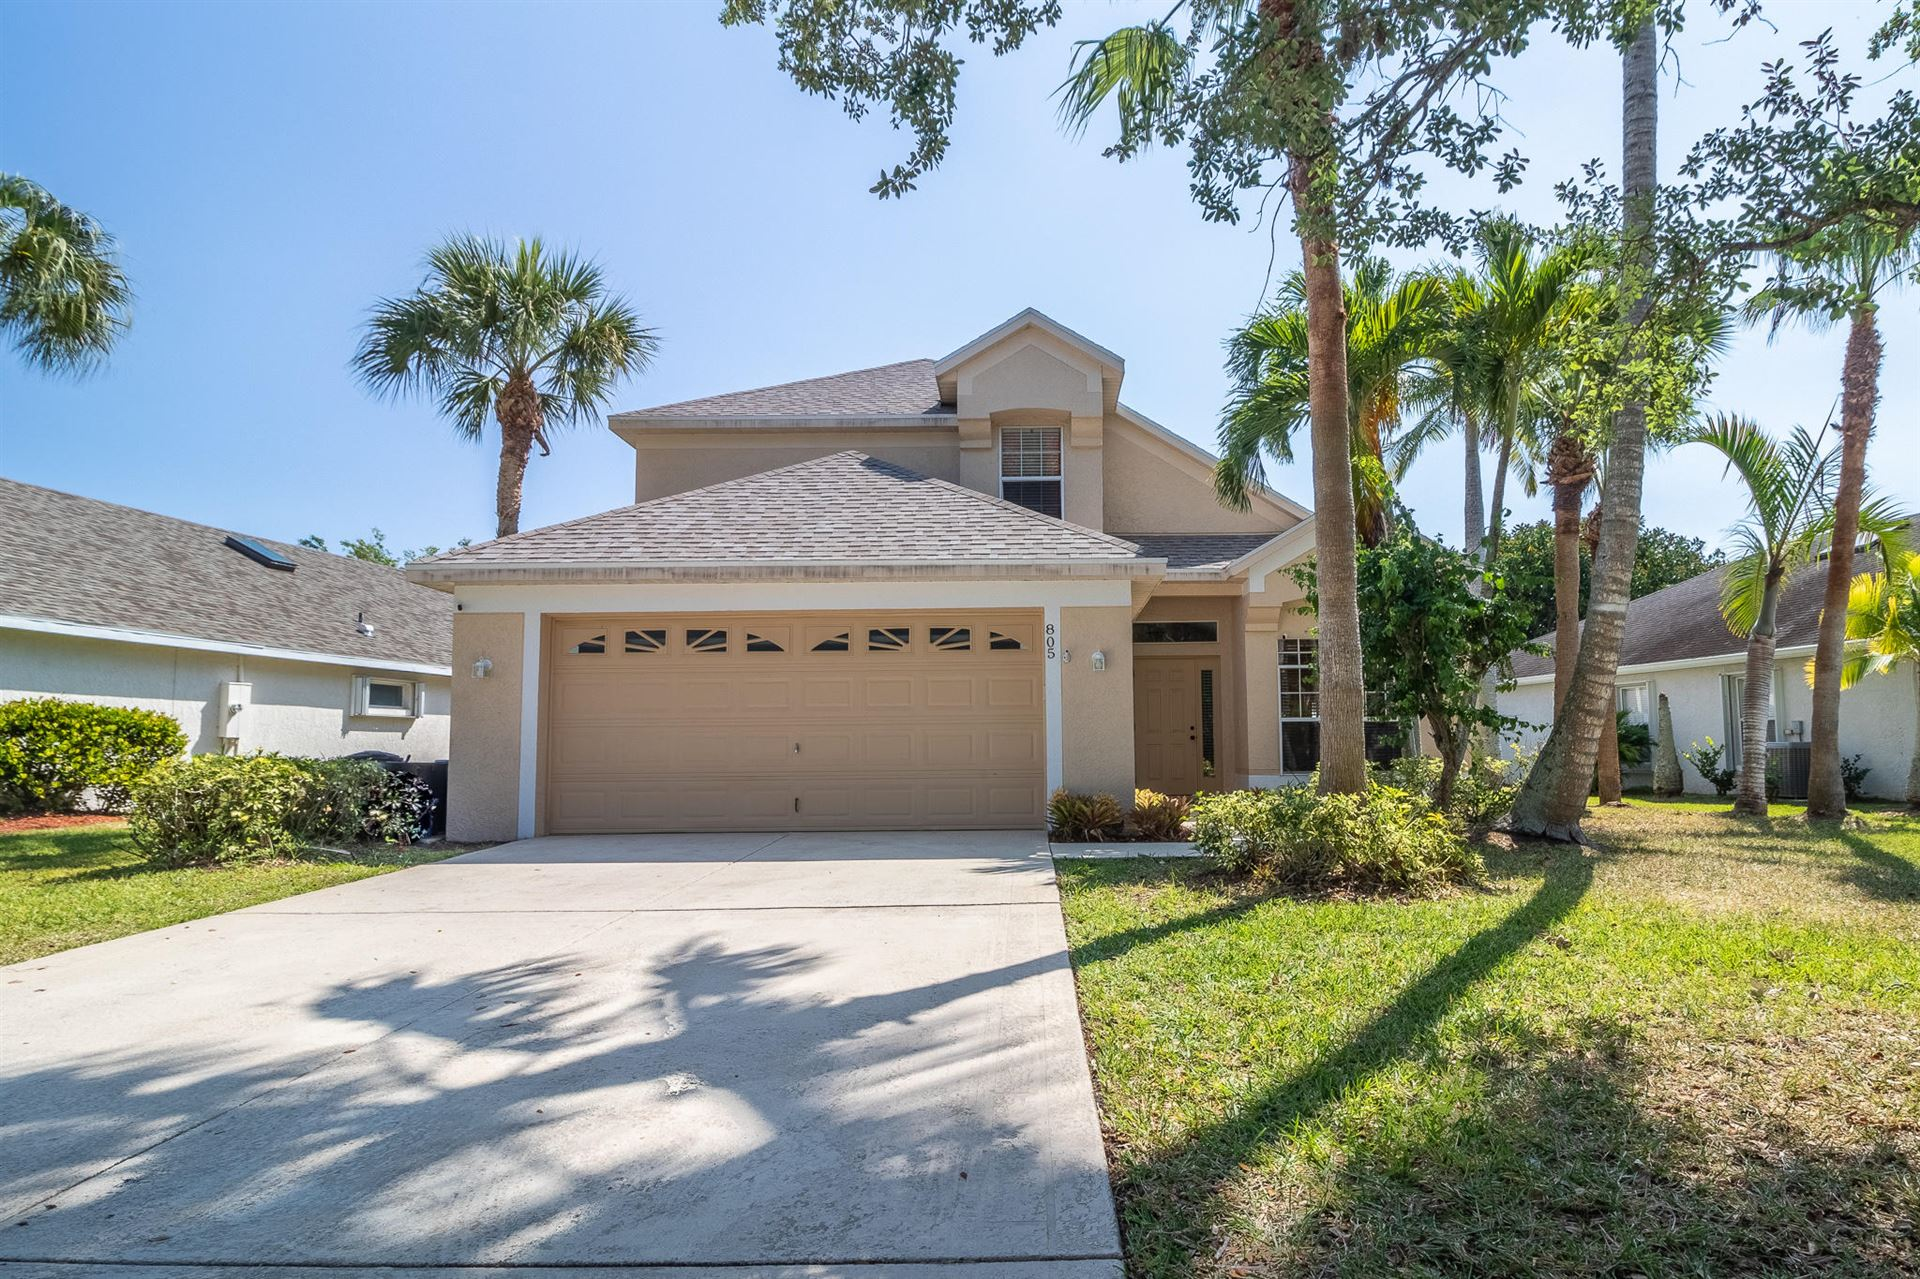 805 NW Waterlily Place, Jensen Beach, FL 34957 - #: RX-10711533